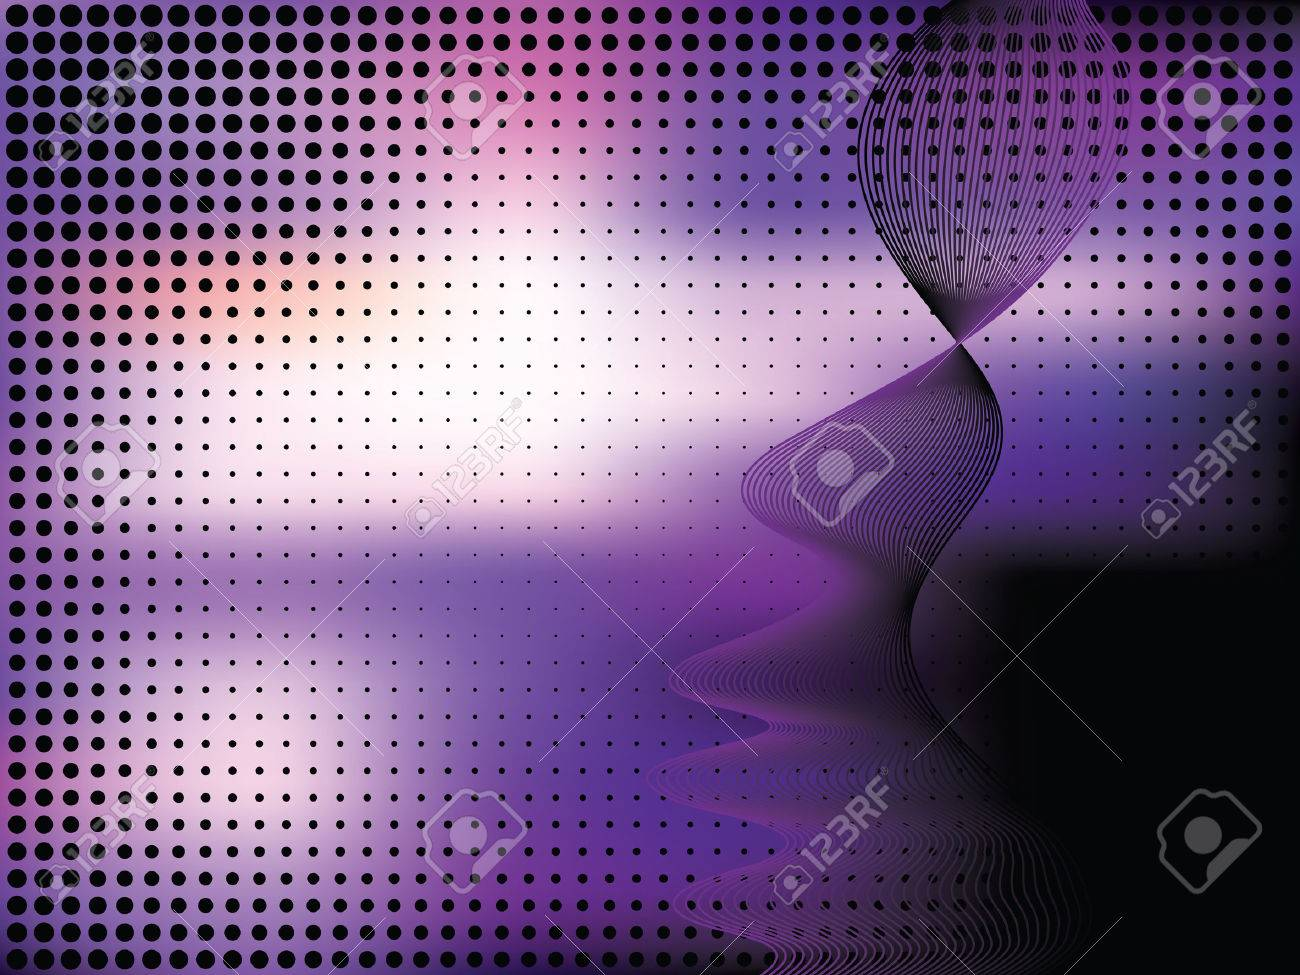 Abstract elegance background with dots. Vector illustration. Gradient mesh include. Stock Vector - 5820197